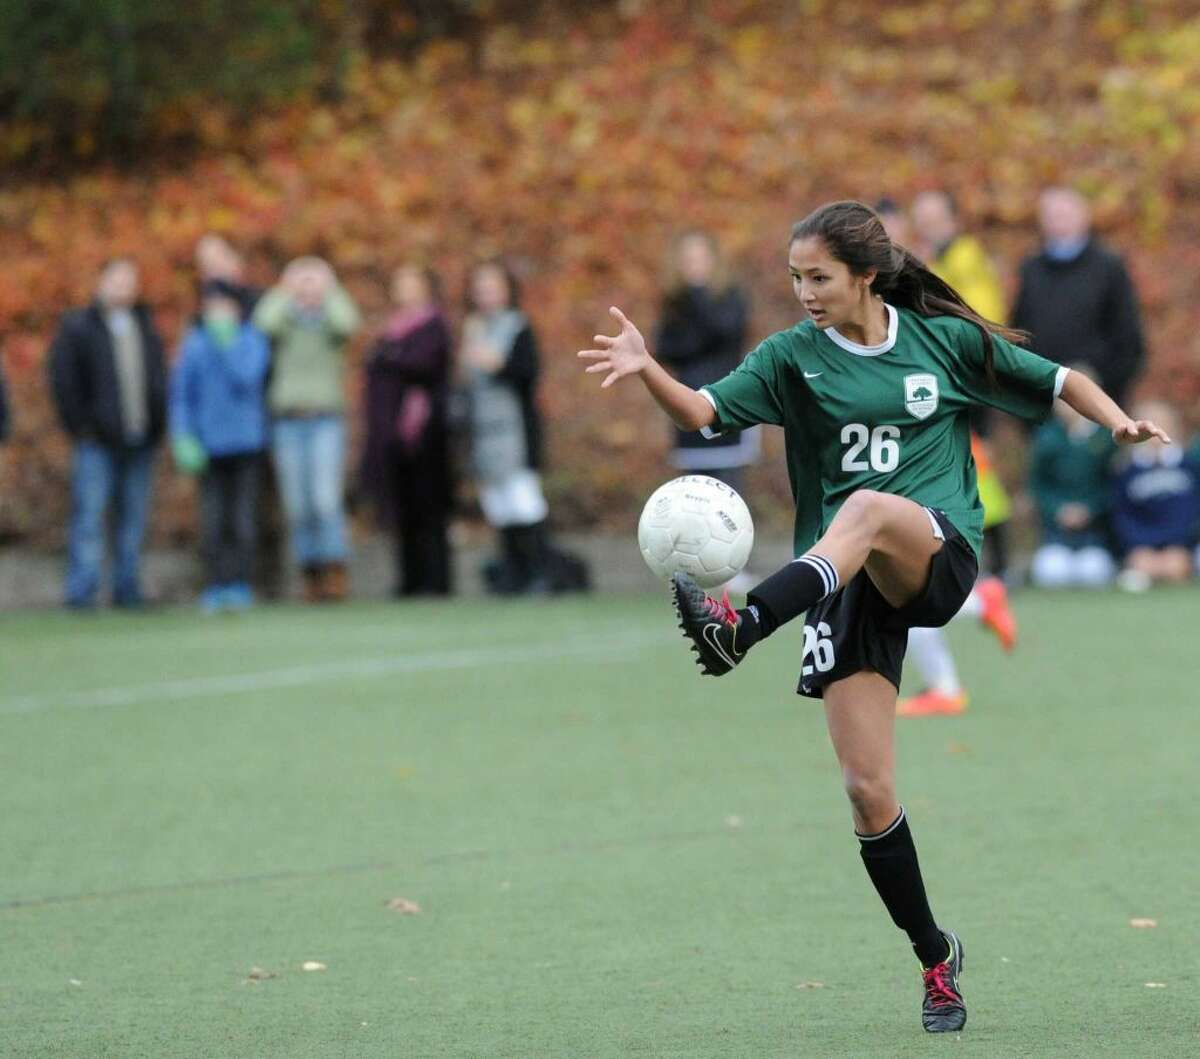 Senior forward Maggie Basta is one of the captains of the Greenwich Academy soccer team.